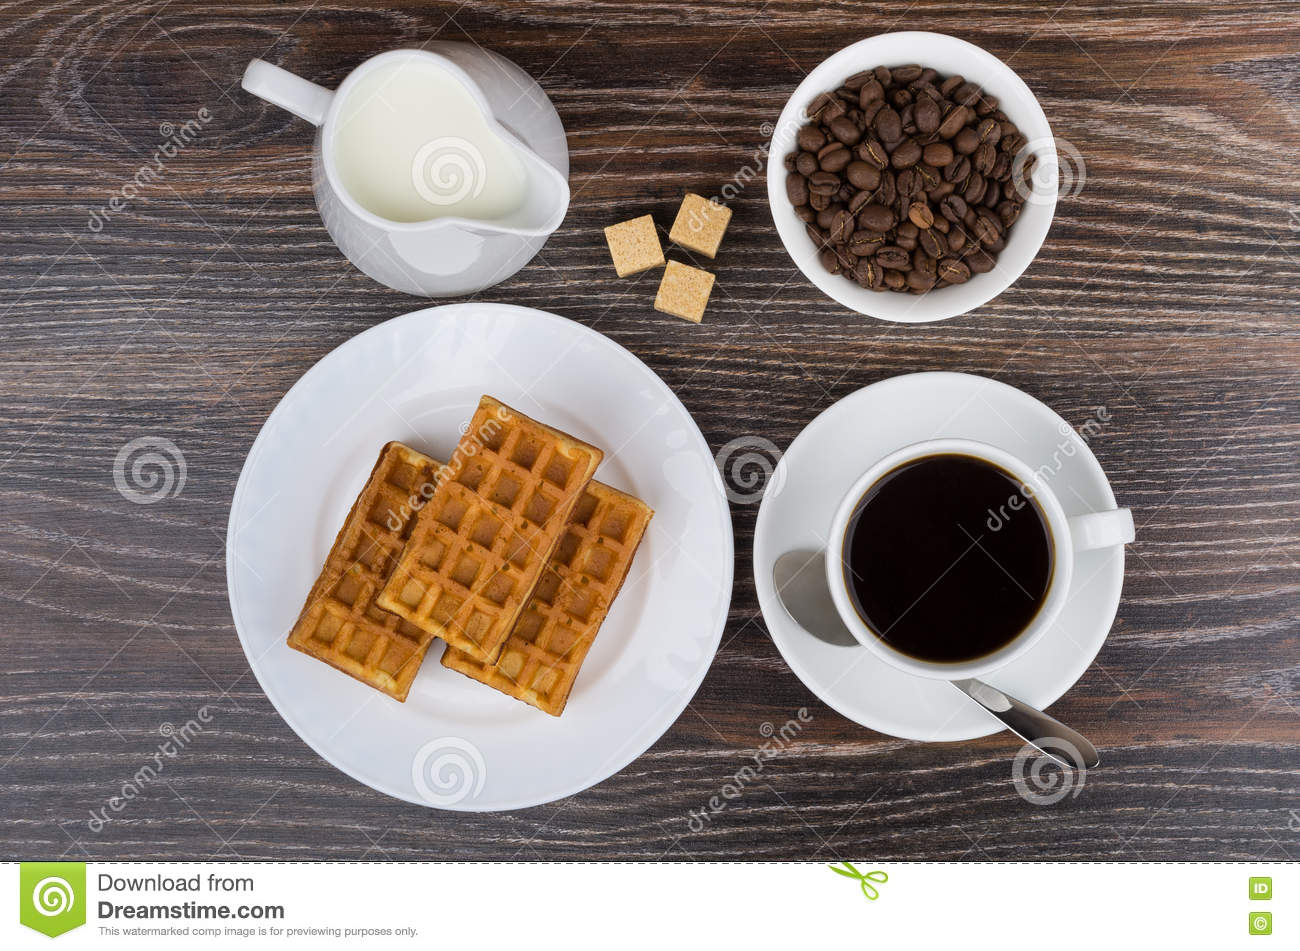 Cup, jug milk, bowl with coffee beans and viennese waffles